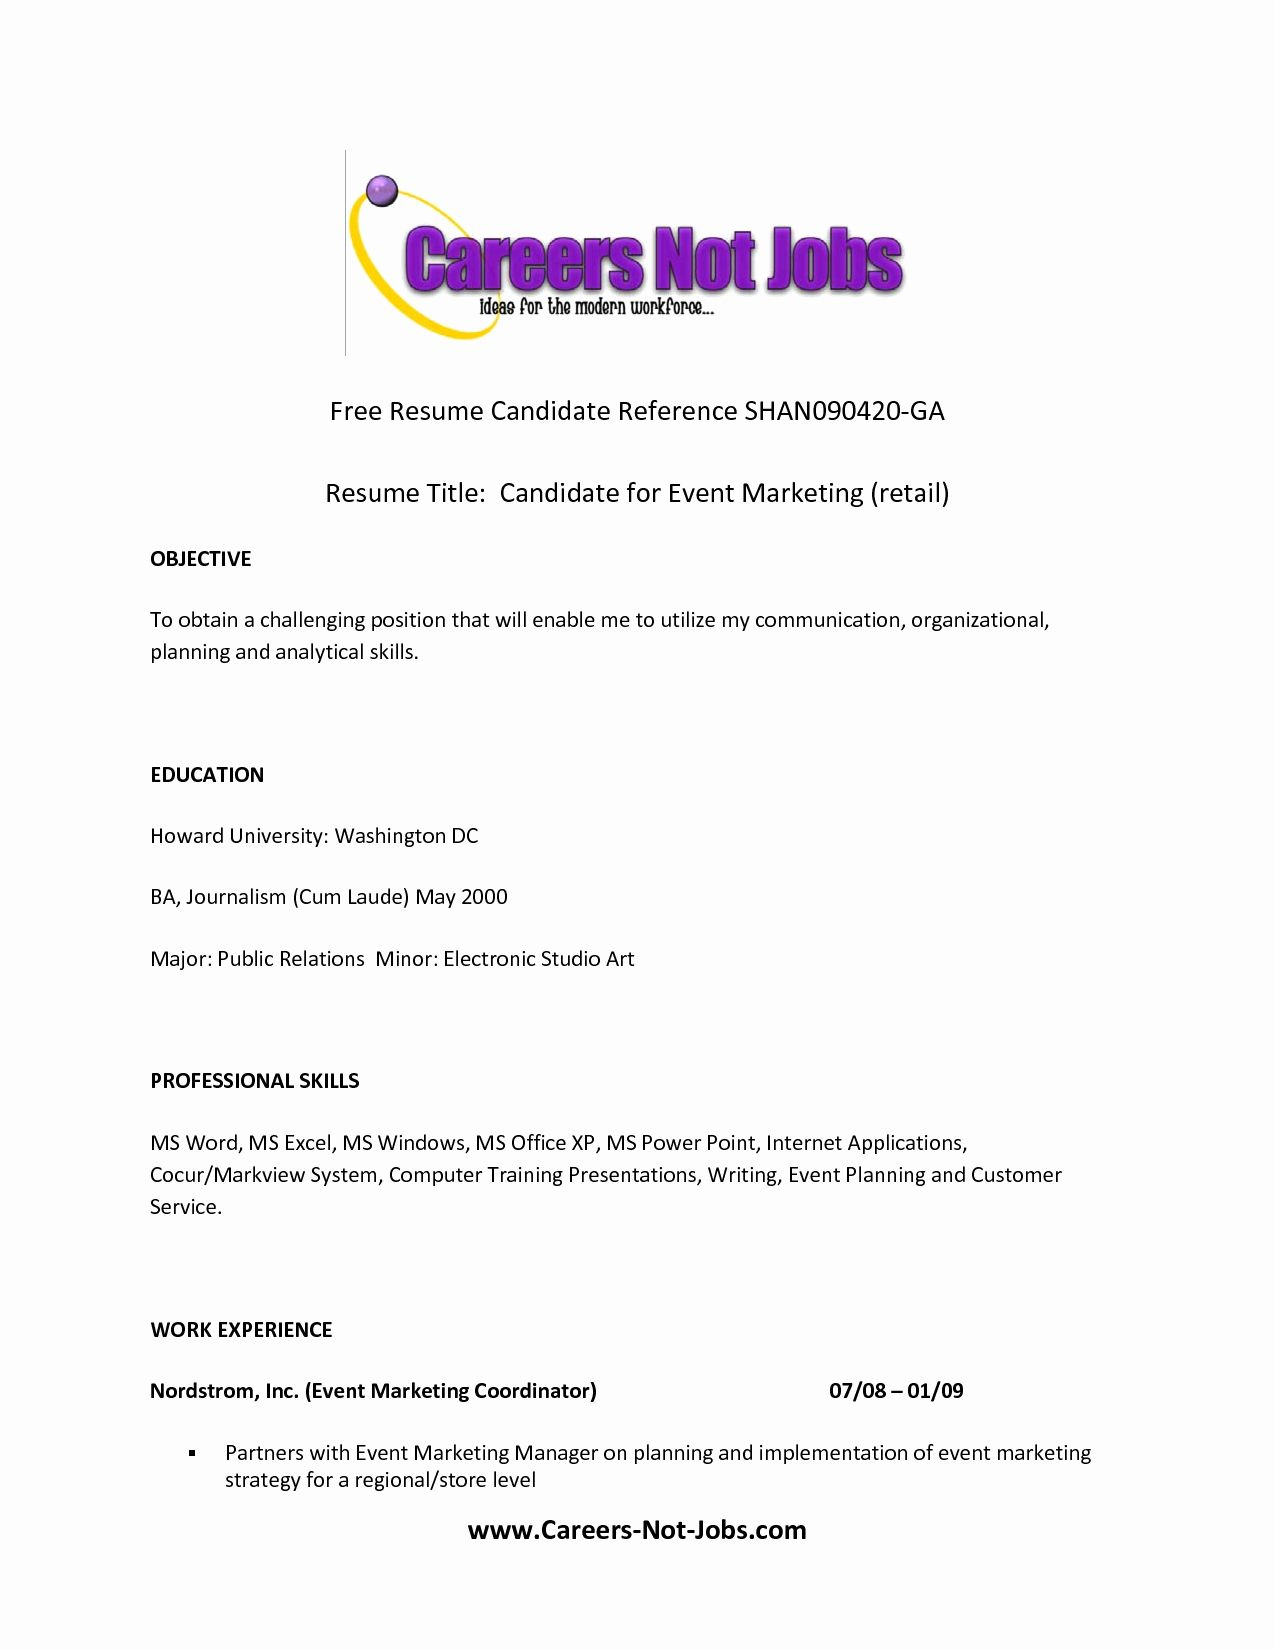 27 Examples Of Resume Titles in 2020 (With images) Best